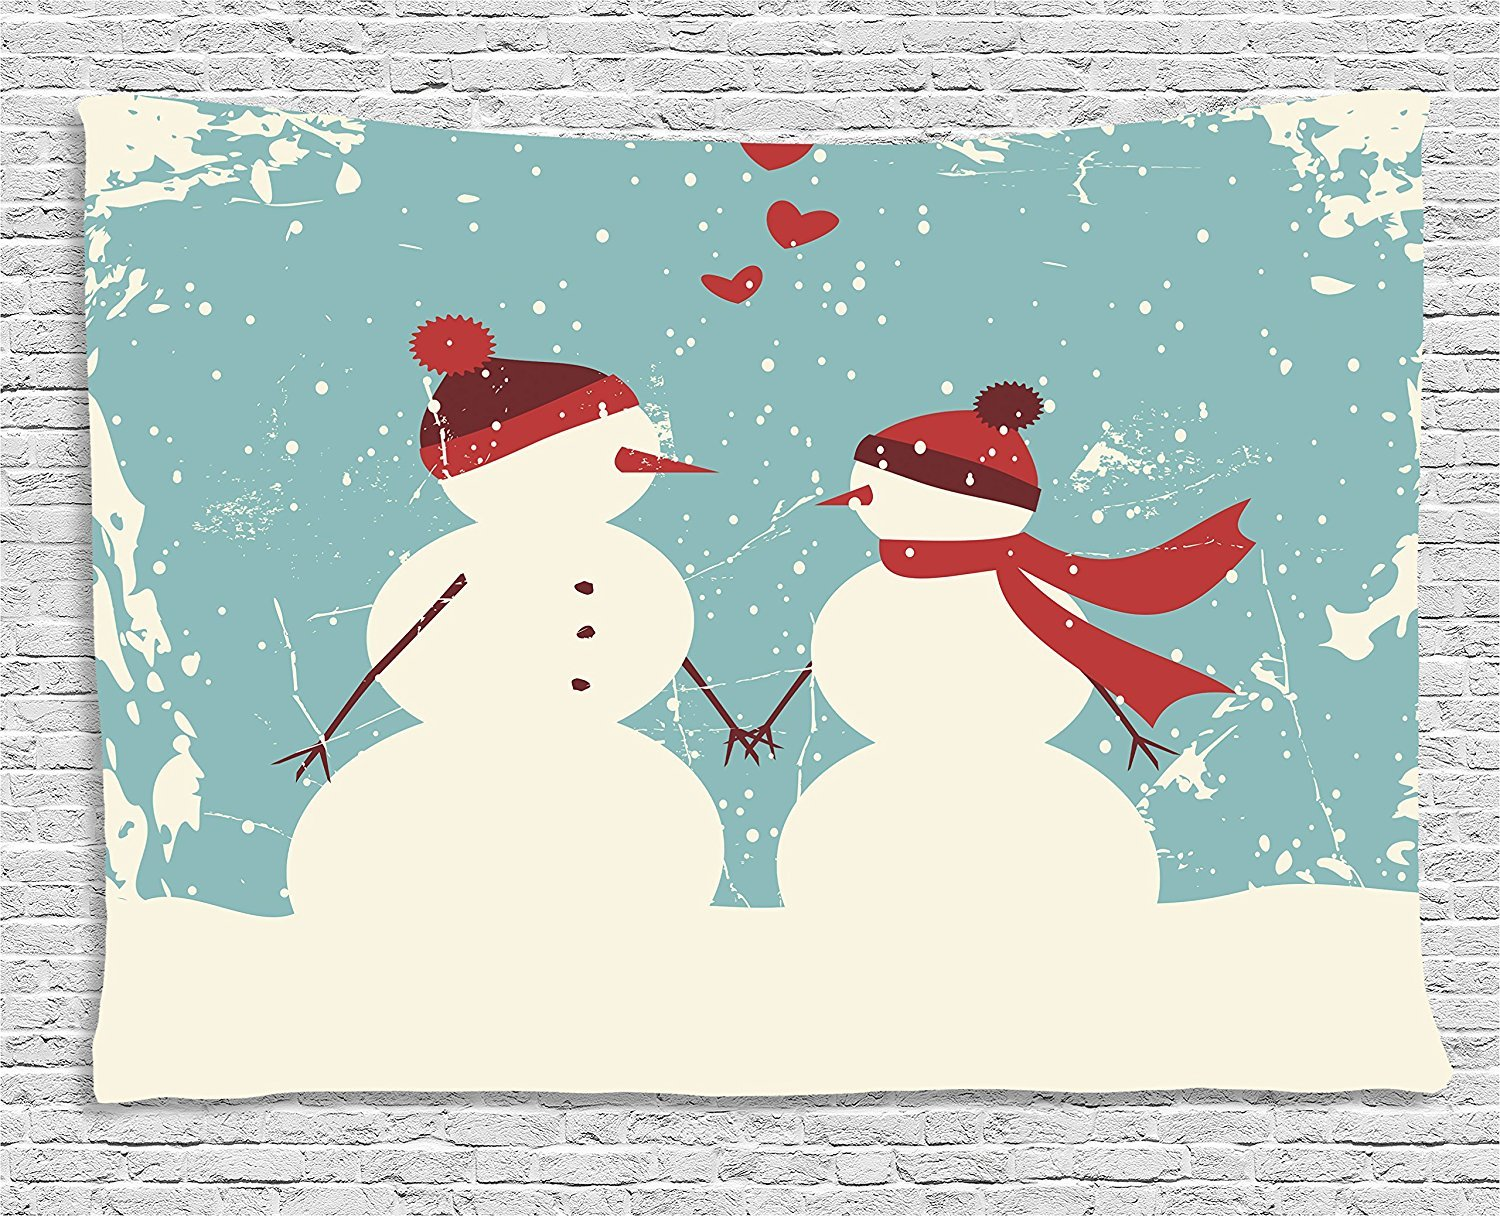 Christmas Tapestry, Snowman and Woman Romantic Couple In Love Holding Hands Grunge Display, Wall Hanging for Bedroom Living Room Dorm, 80 W X 60 L Inches, Seafoam Red Cream by asddcdfdd